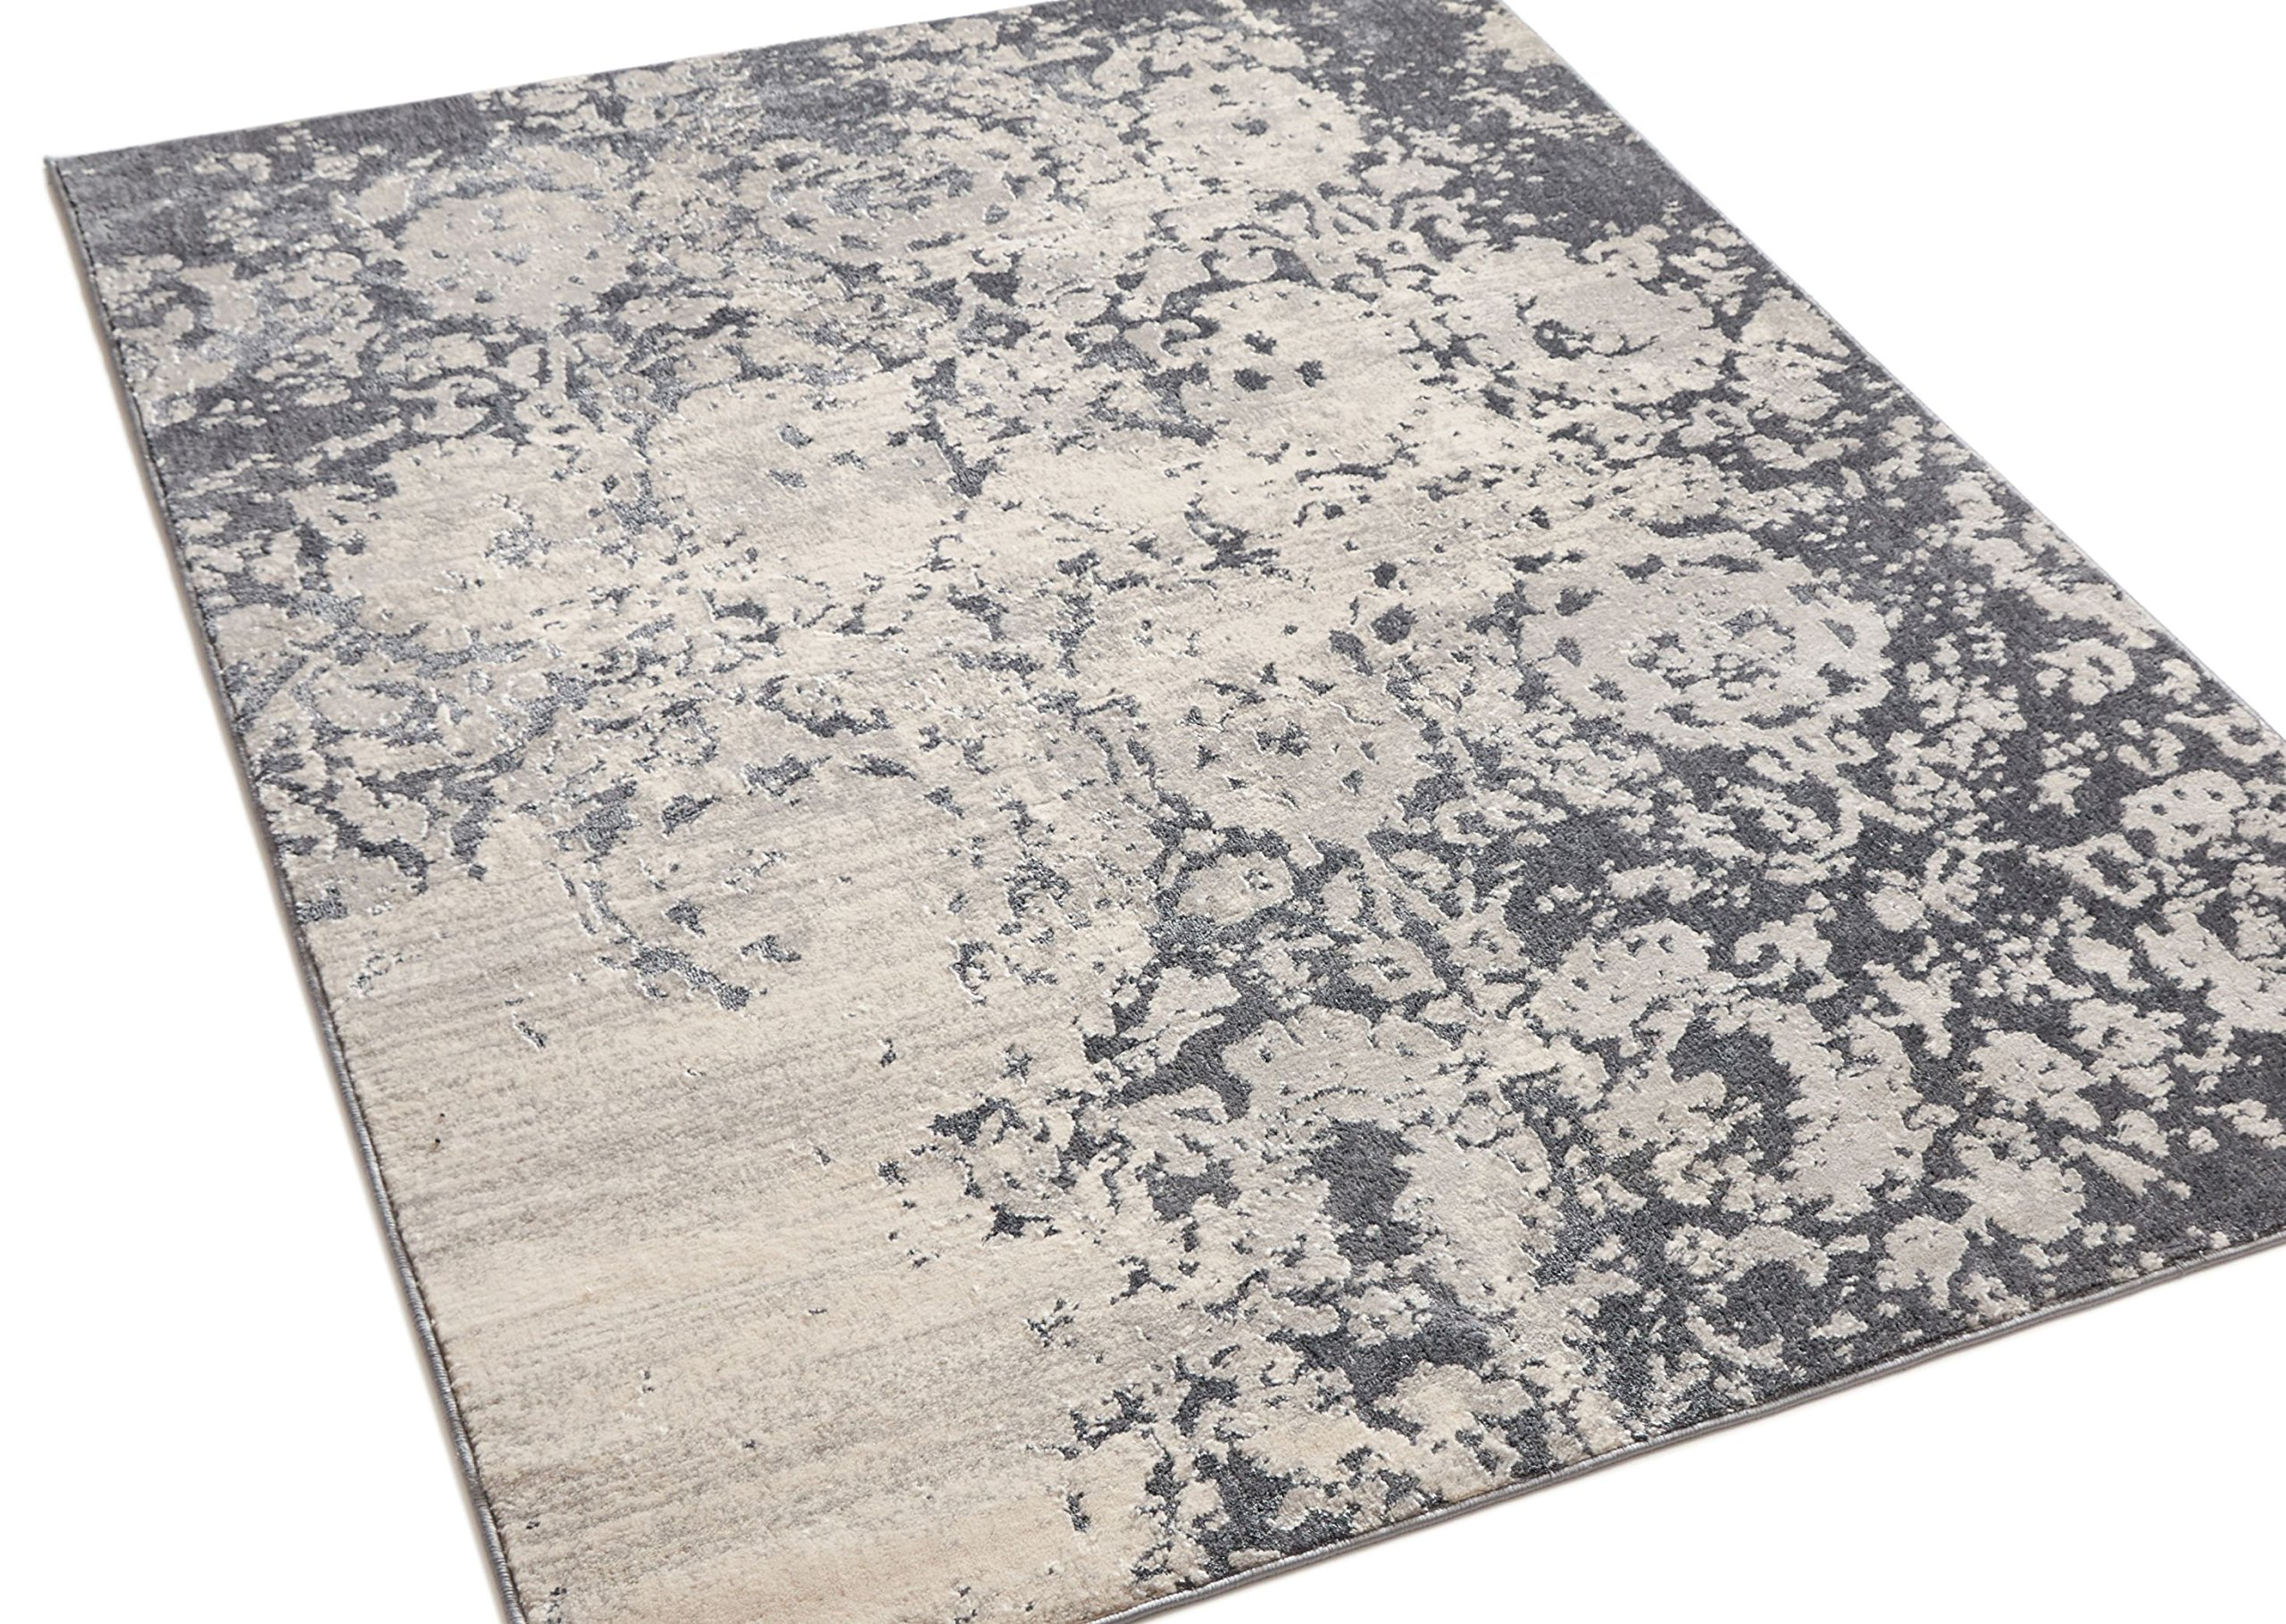 Forte Grey Microfiber High-Low Pile Vintage Abstract Erased Floral 8x10 (7'10'' x 9'10'') Area Rug Modern Oriental Carpet by Well Woven (Image #5)